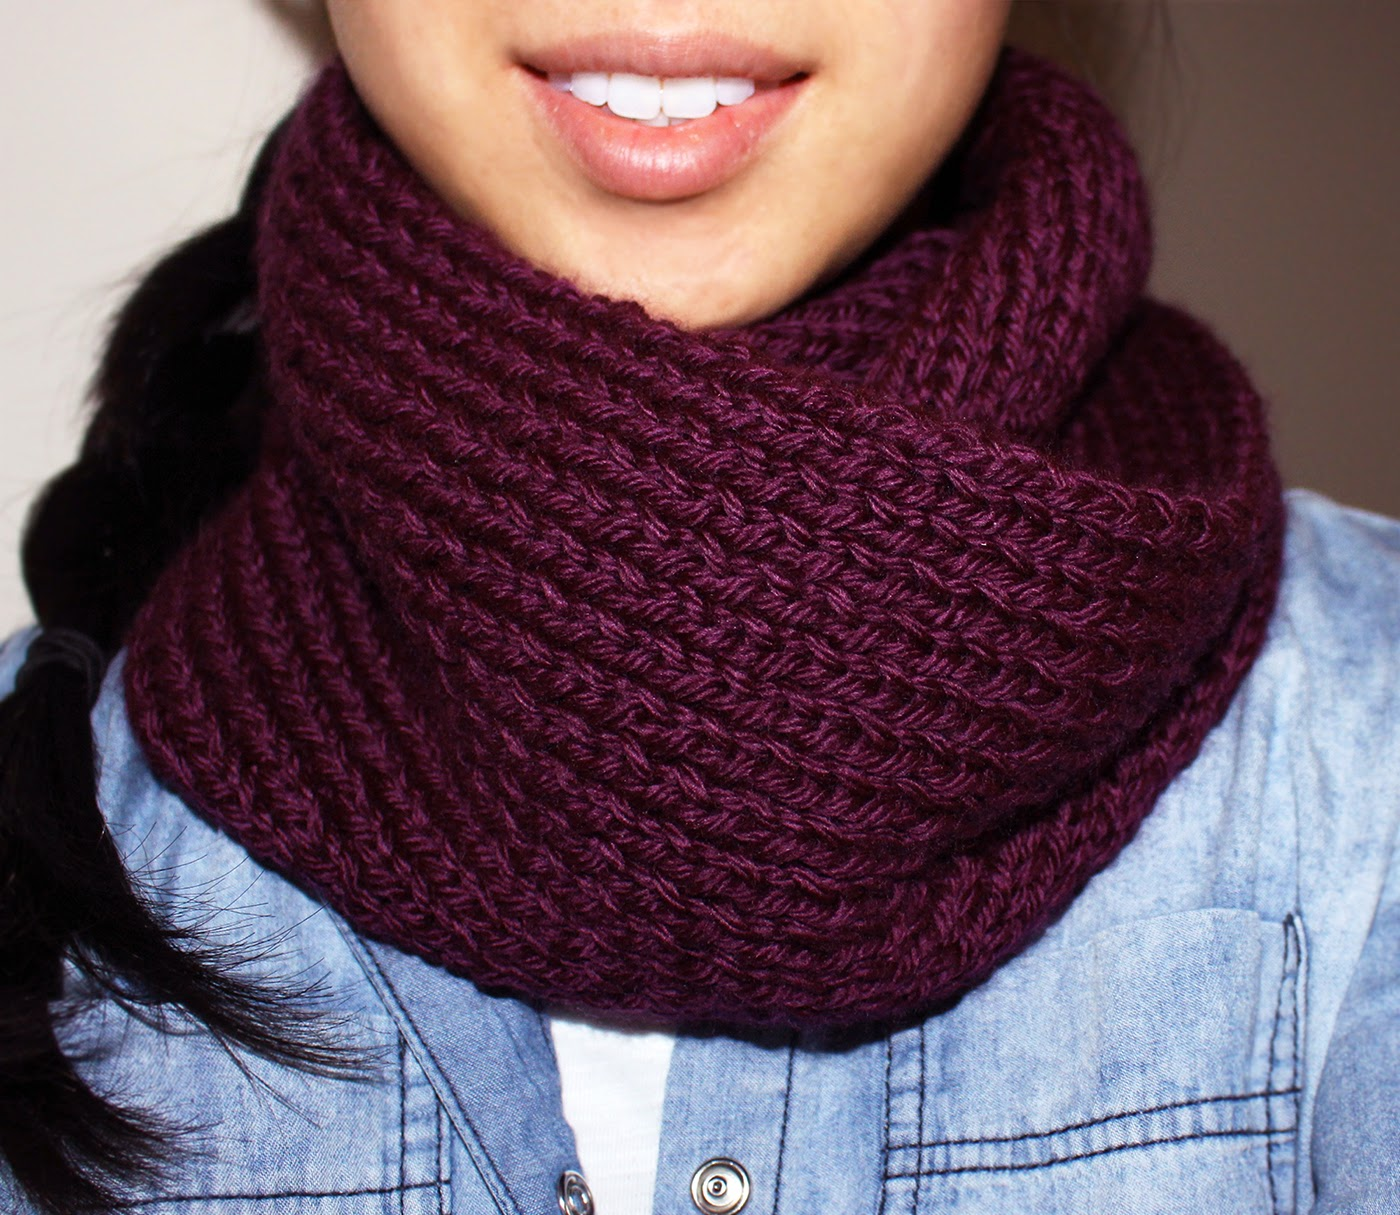 Simple Knitting Pattern For A Scarf : Purllin: Acai Infinity Circle Scarf [free knitting pattern]